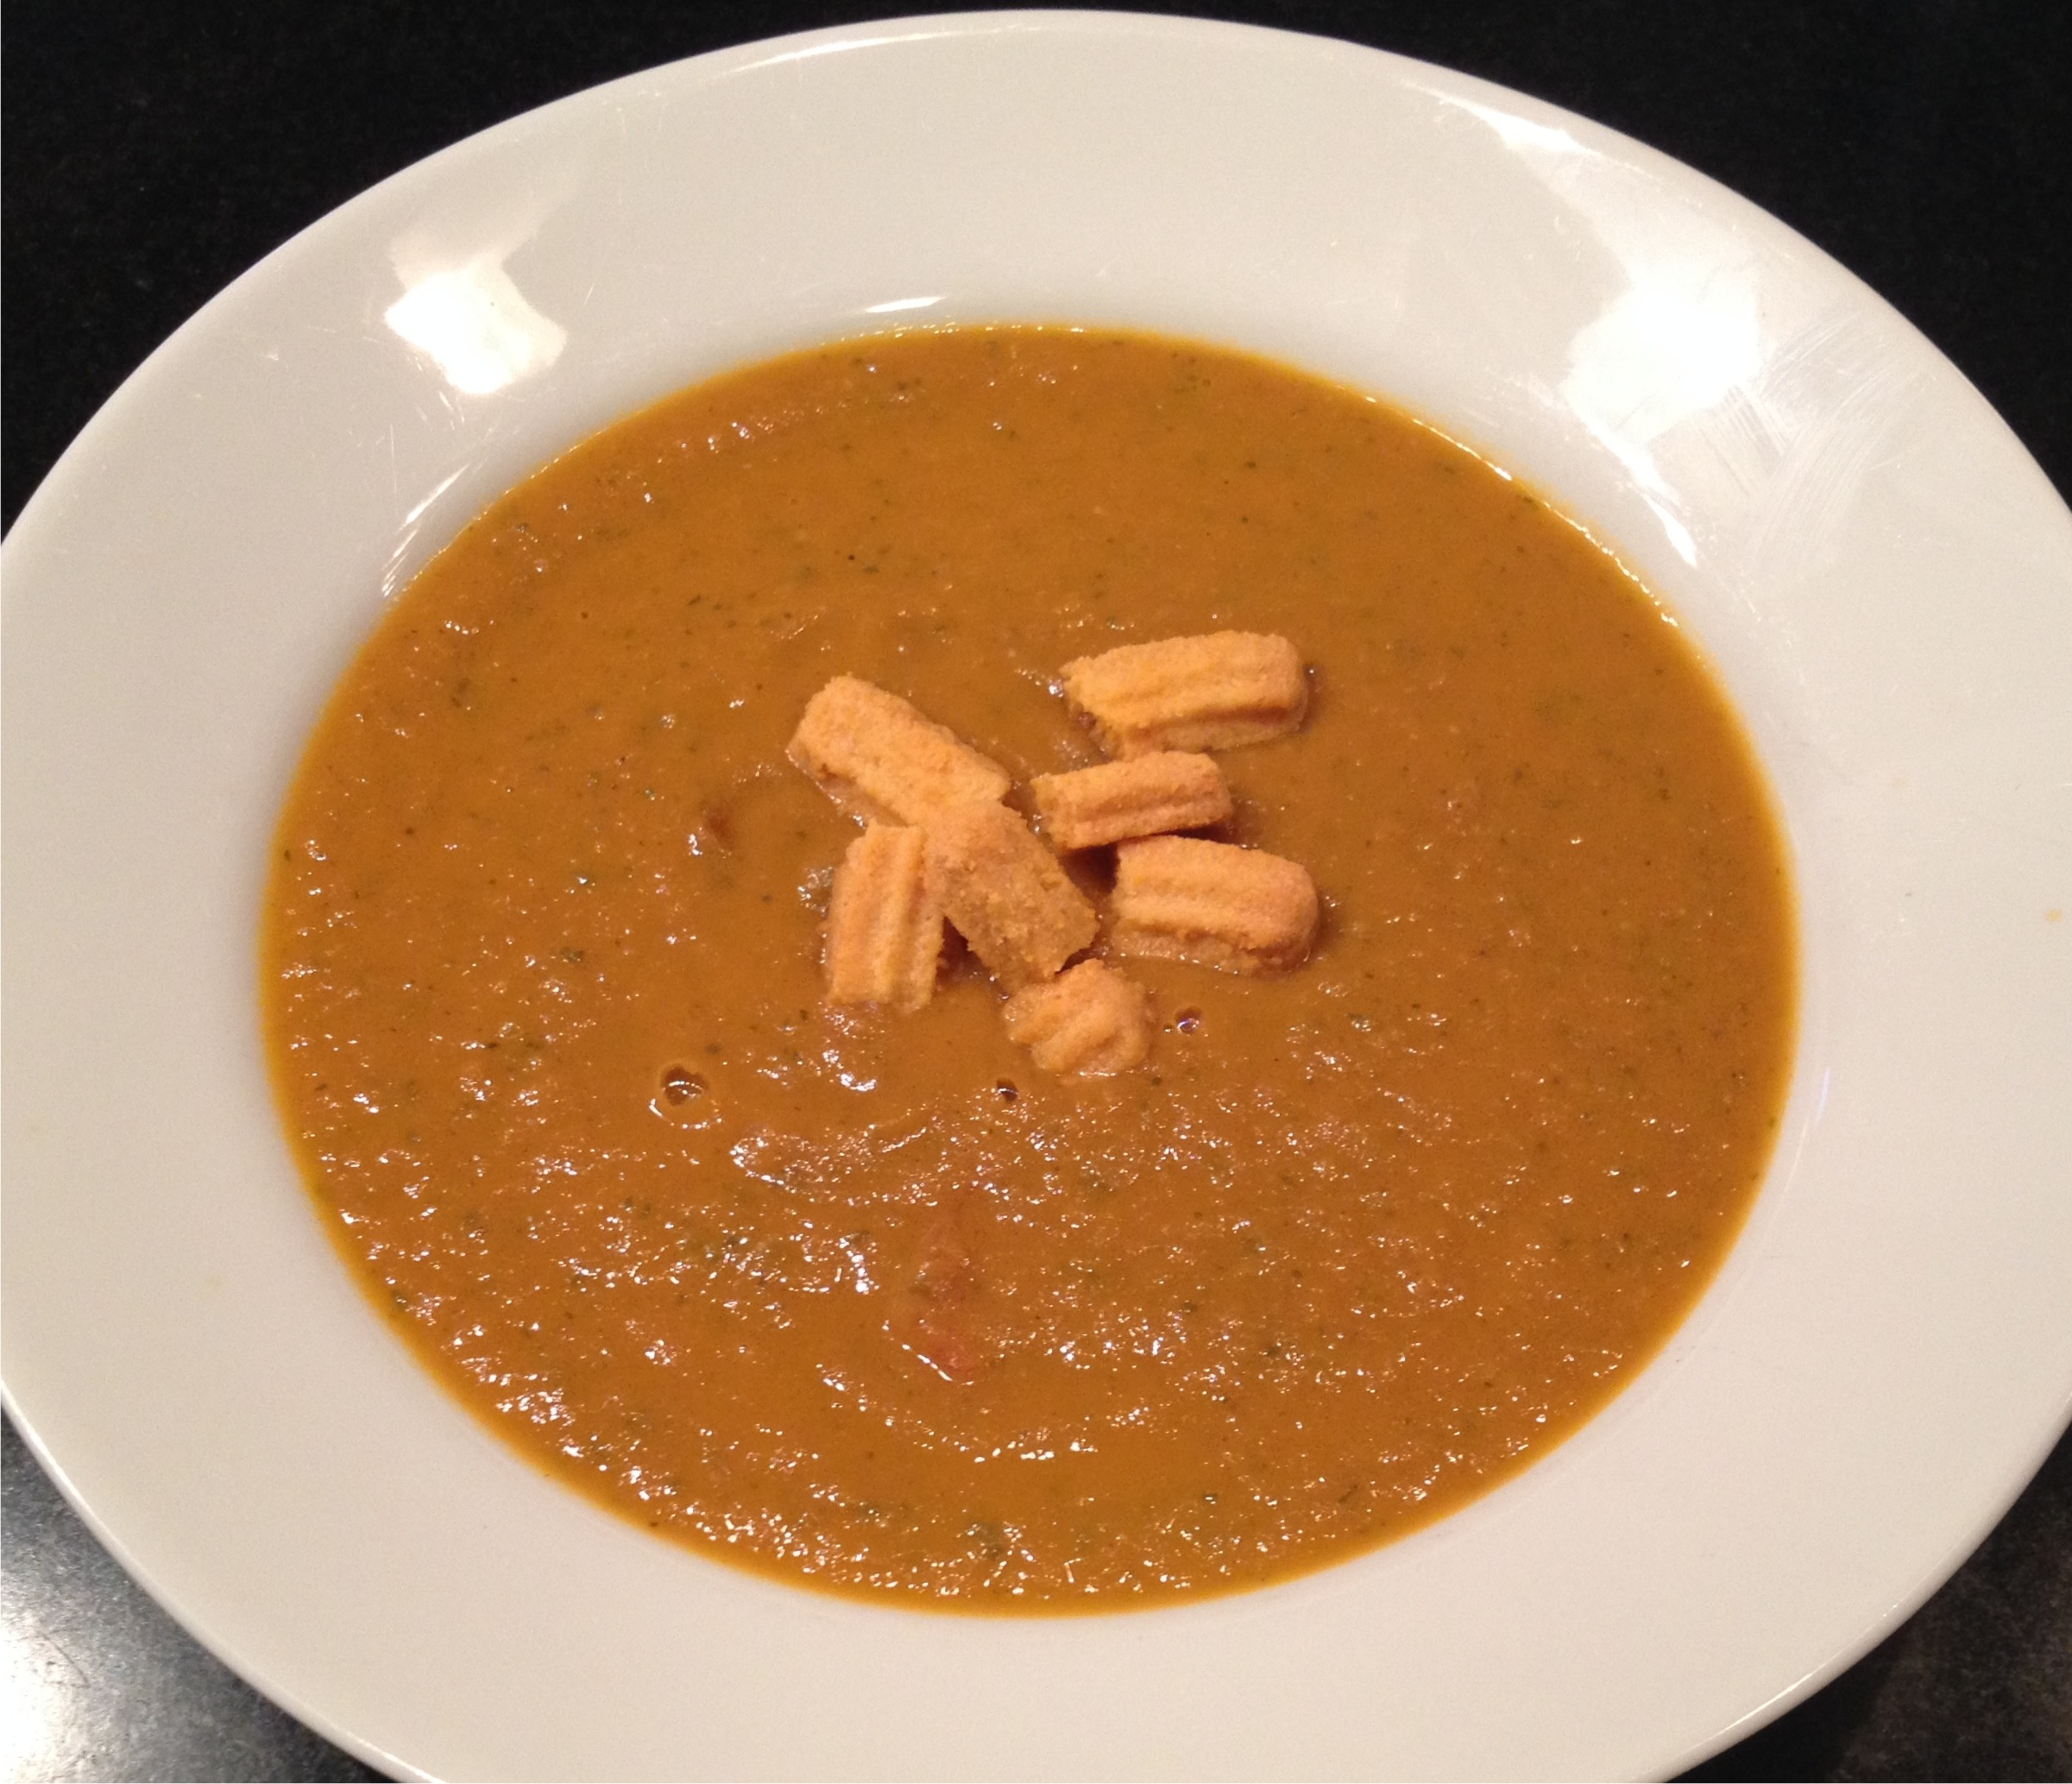 Smoked tomato soup with Neuskes Sausages and Flathaus Cheese Straw croutons in a white rimmed bowl